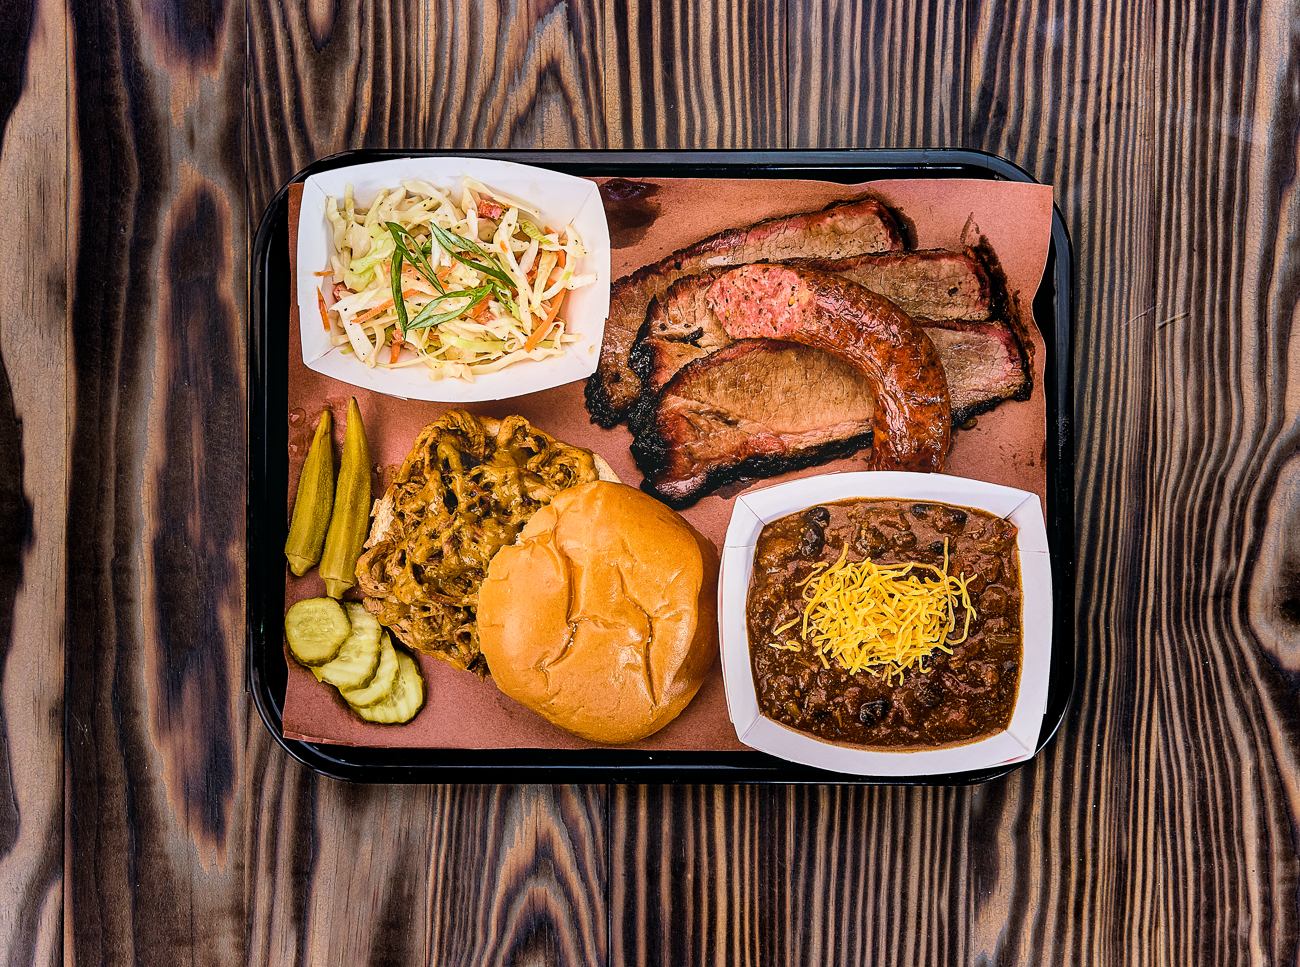 Lucius Q (Barbecue) / ADDRESS: 1131 Broadway St., Pendelton / PHONE: 513-421-4227 / Image courtesy of Lucius Q // Published: 3.17.20